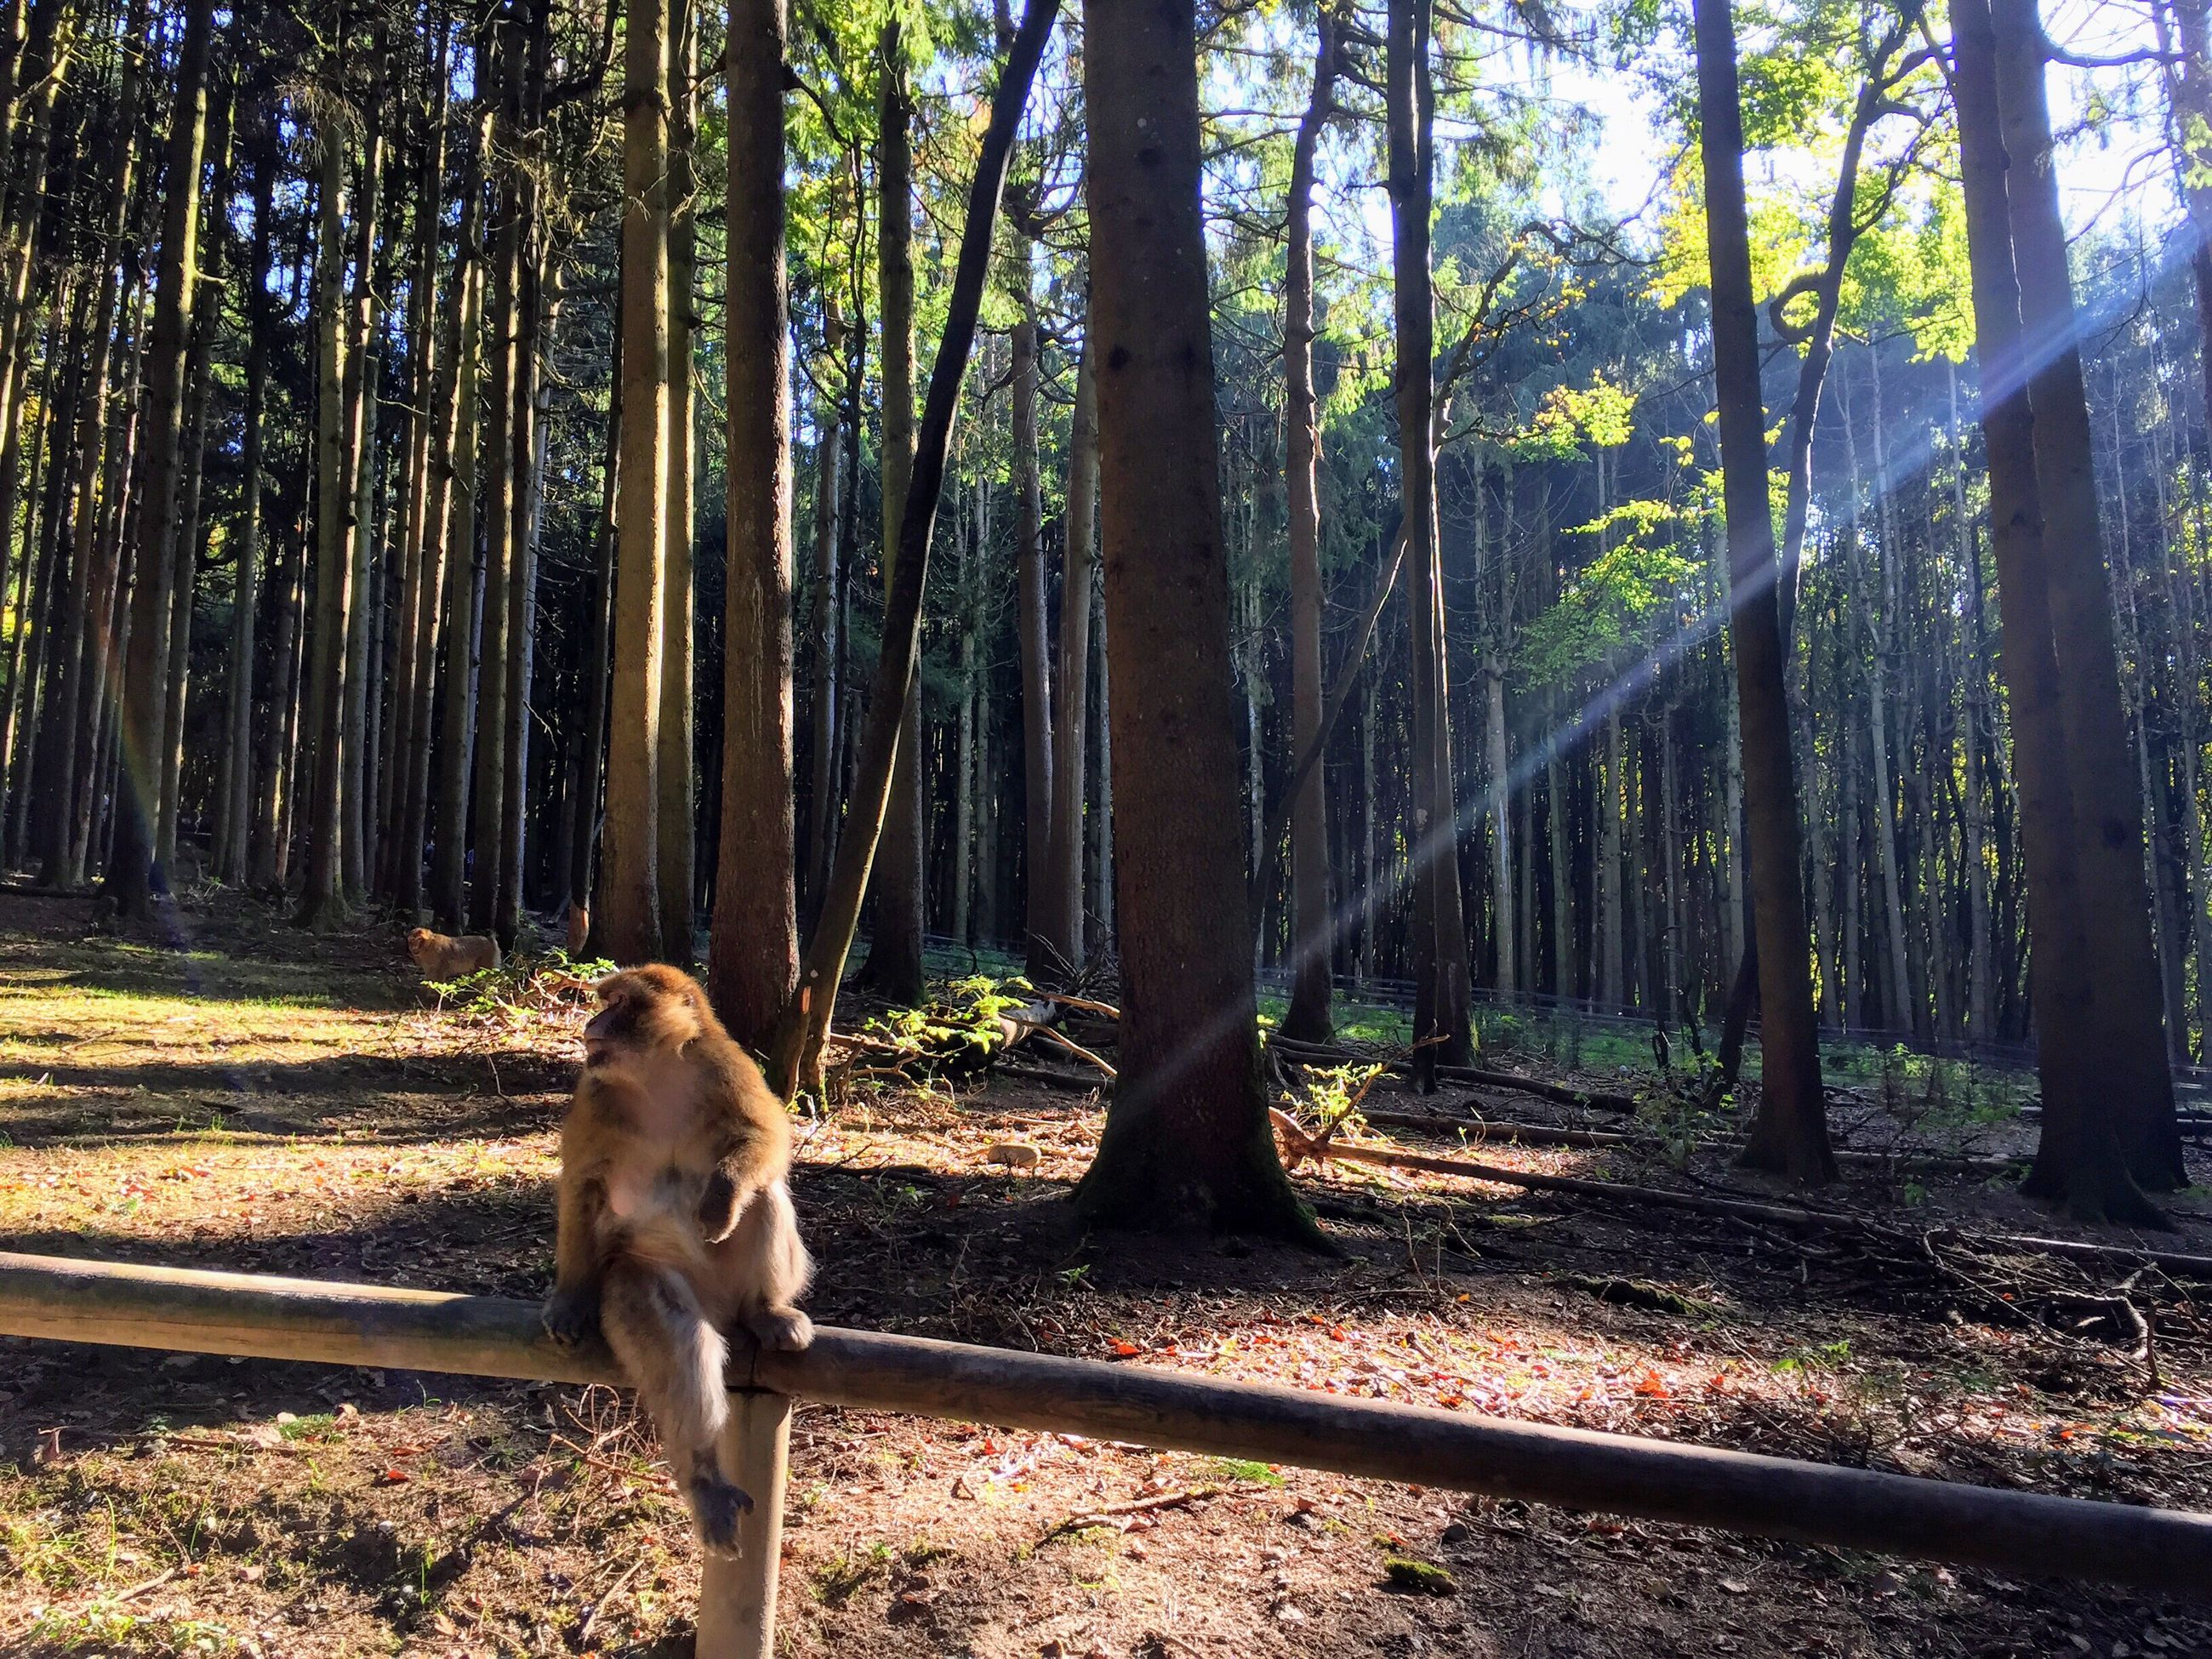 tree, forest, nature, animal themes, one animal, domestic animals, tree trunk, mammal, dog, outdoors, day, no people, growth